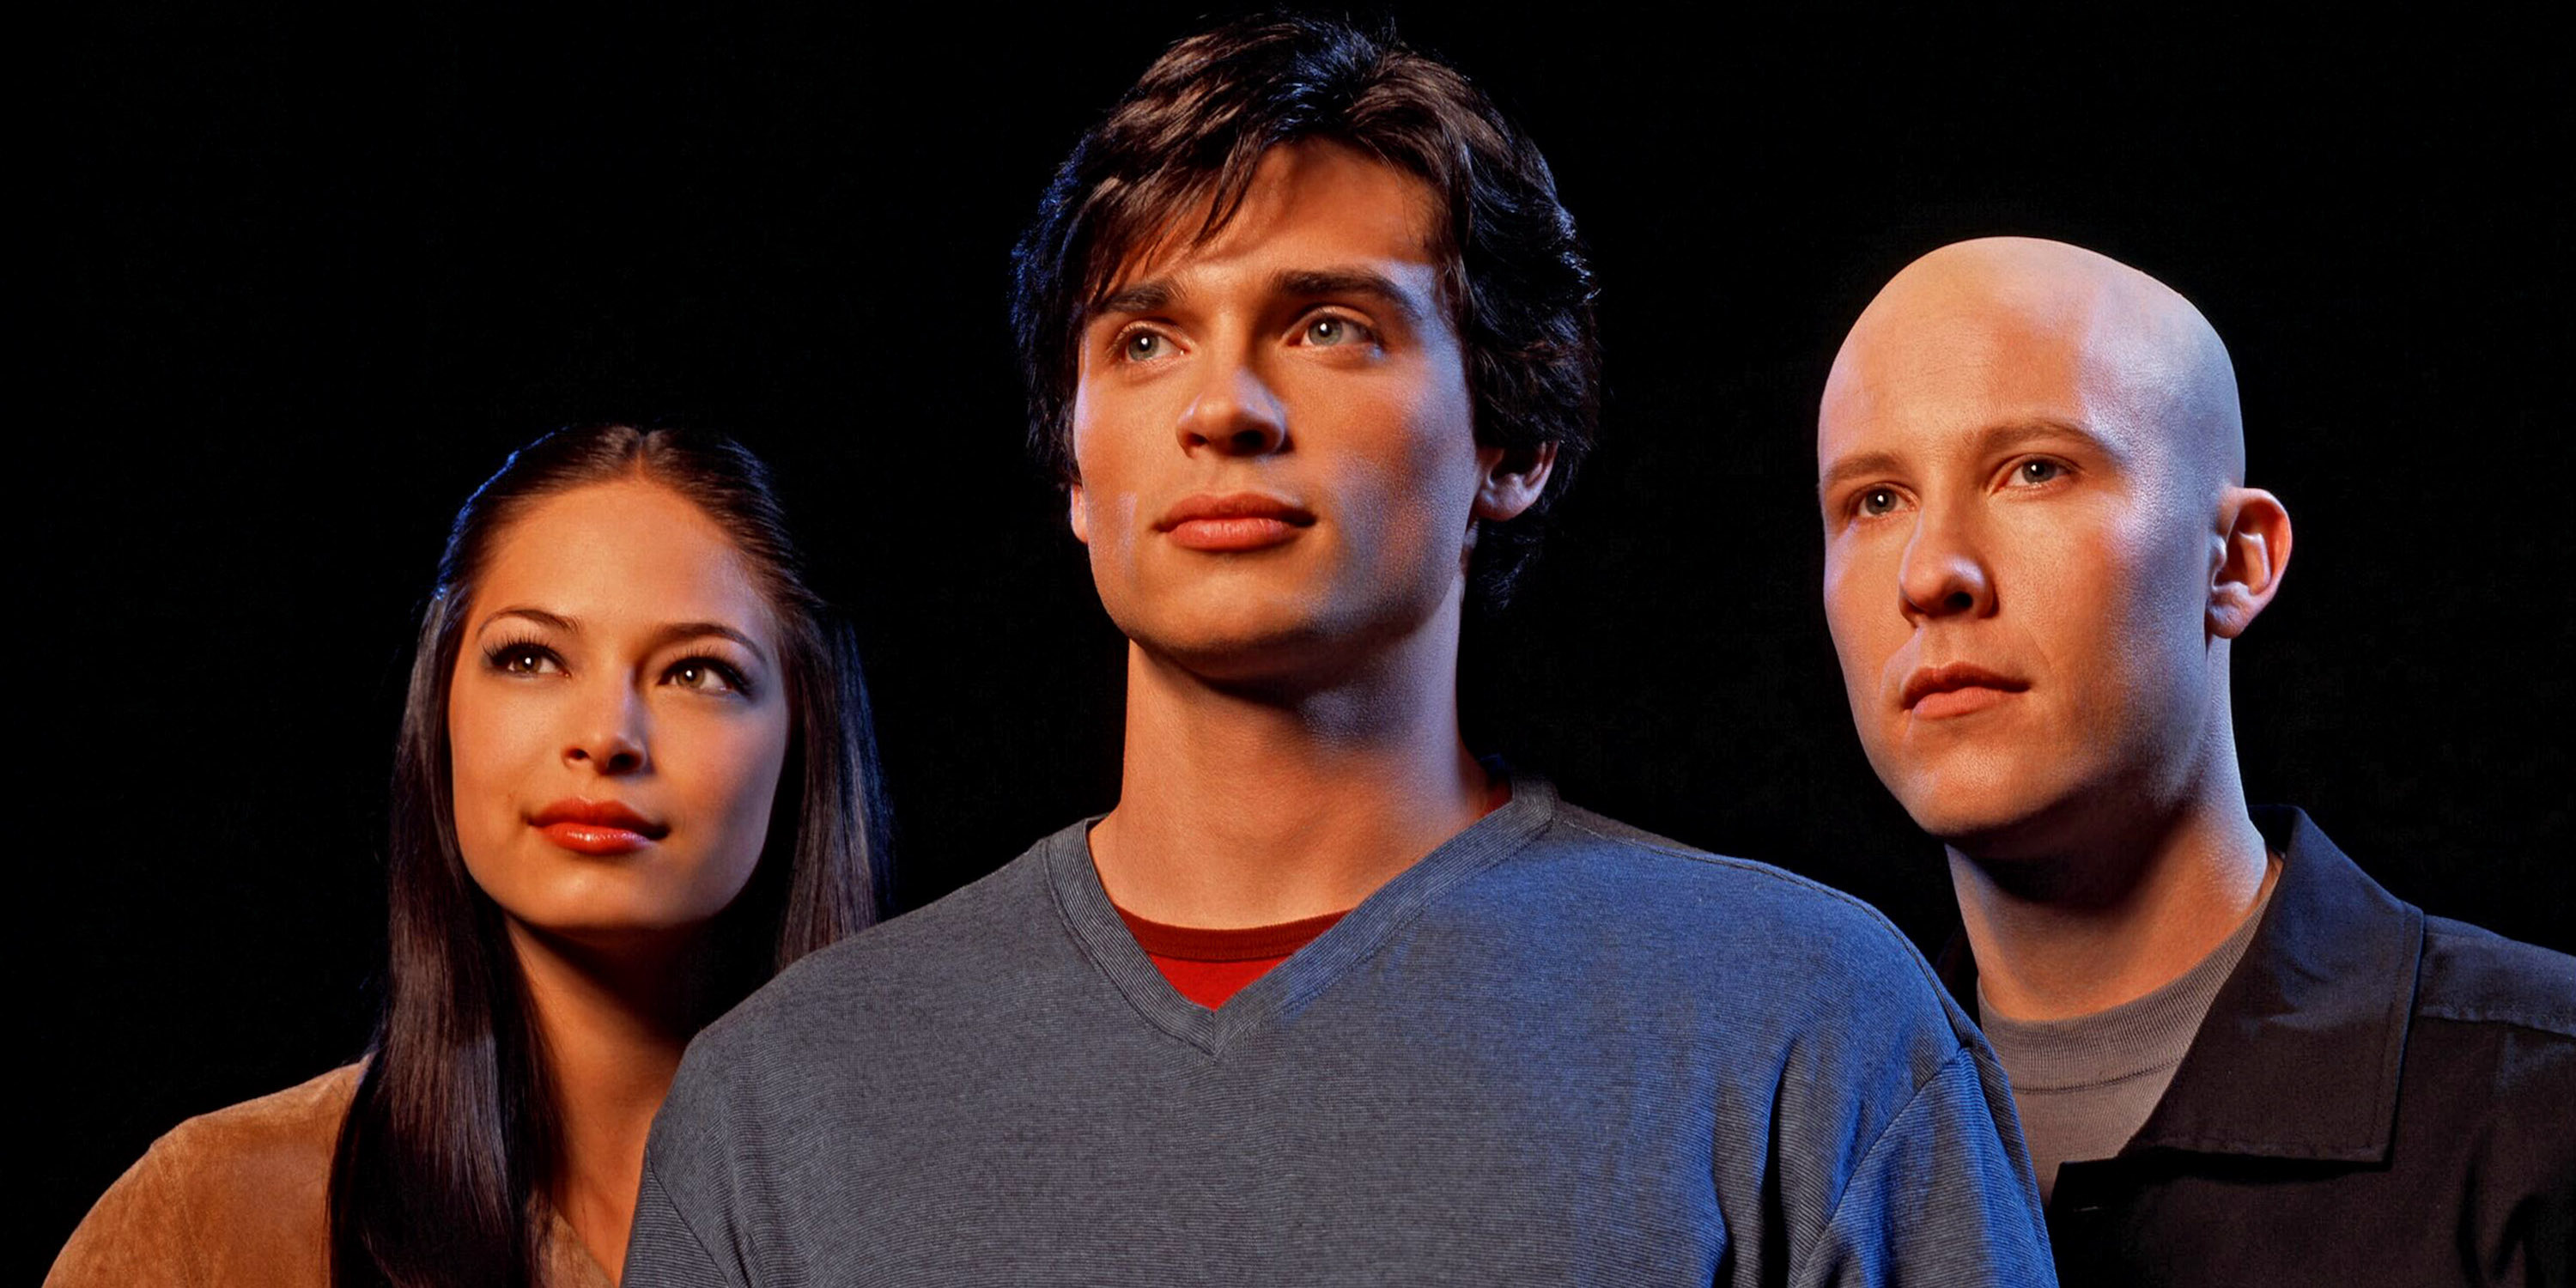 Lucifer Season 3 Adds Smallville's Tom Welling